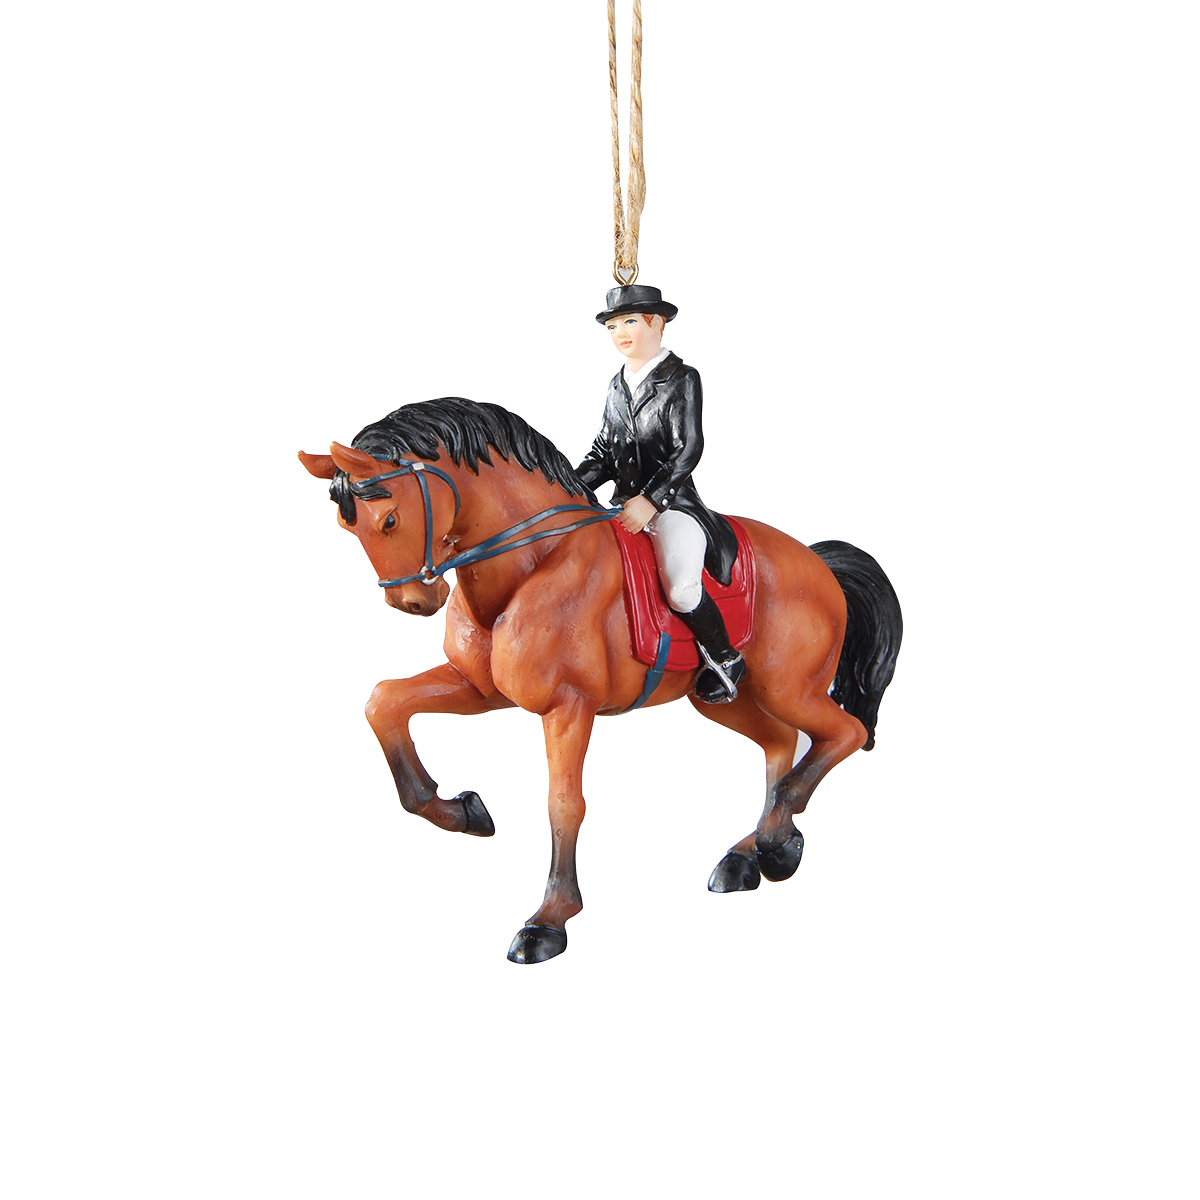 Gallerie II_Ornaments & Decorations_Equestrian Holidy.jpg